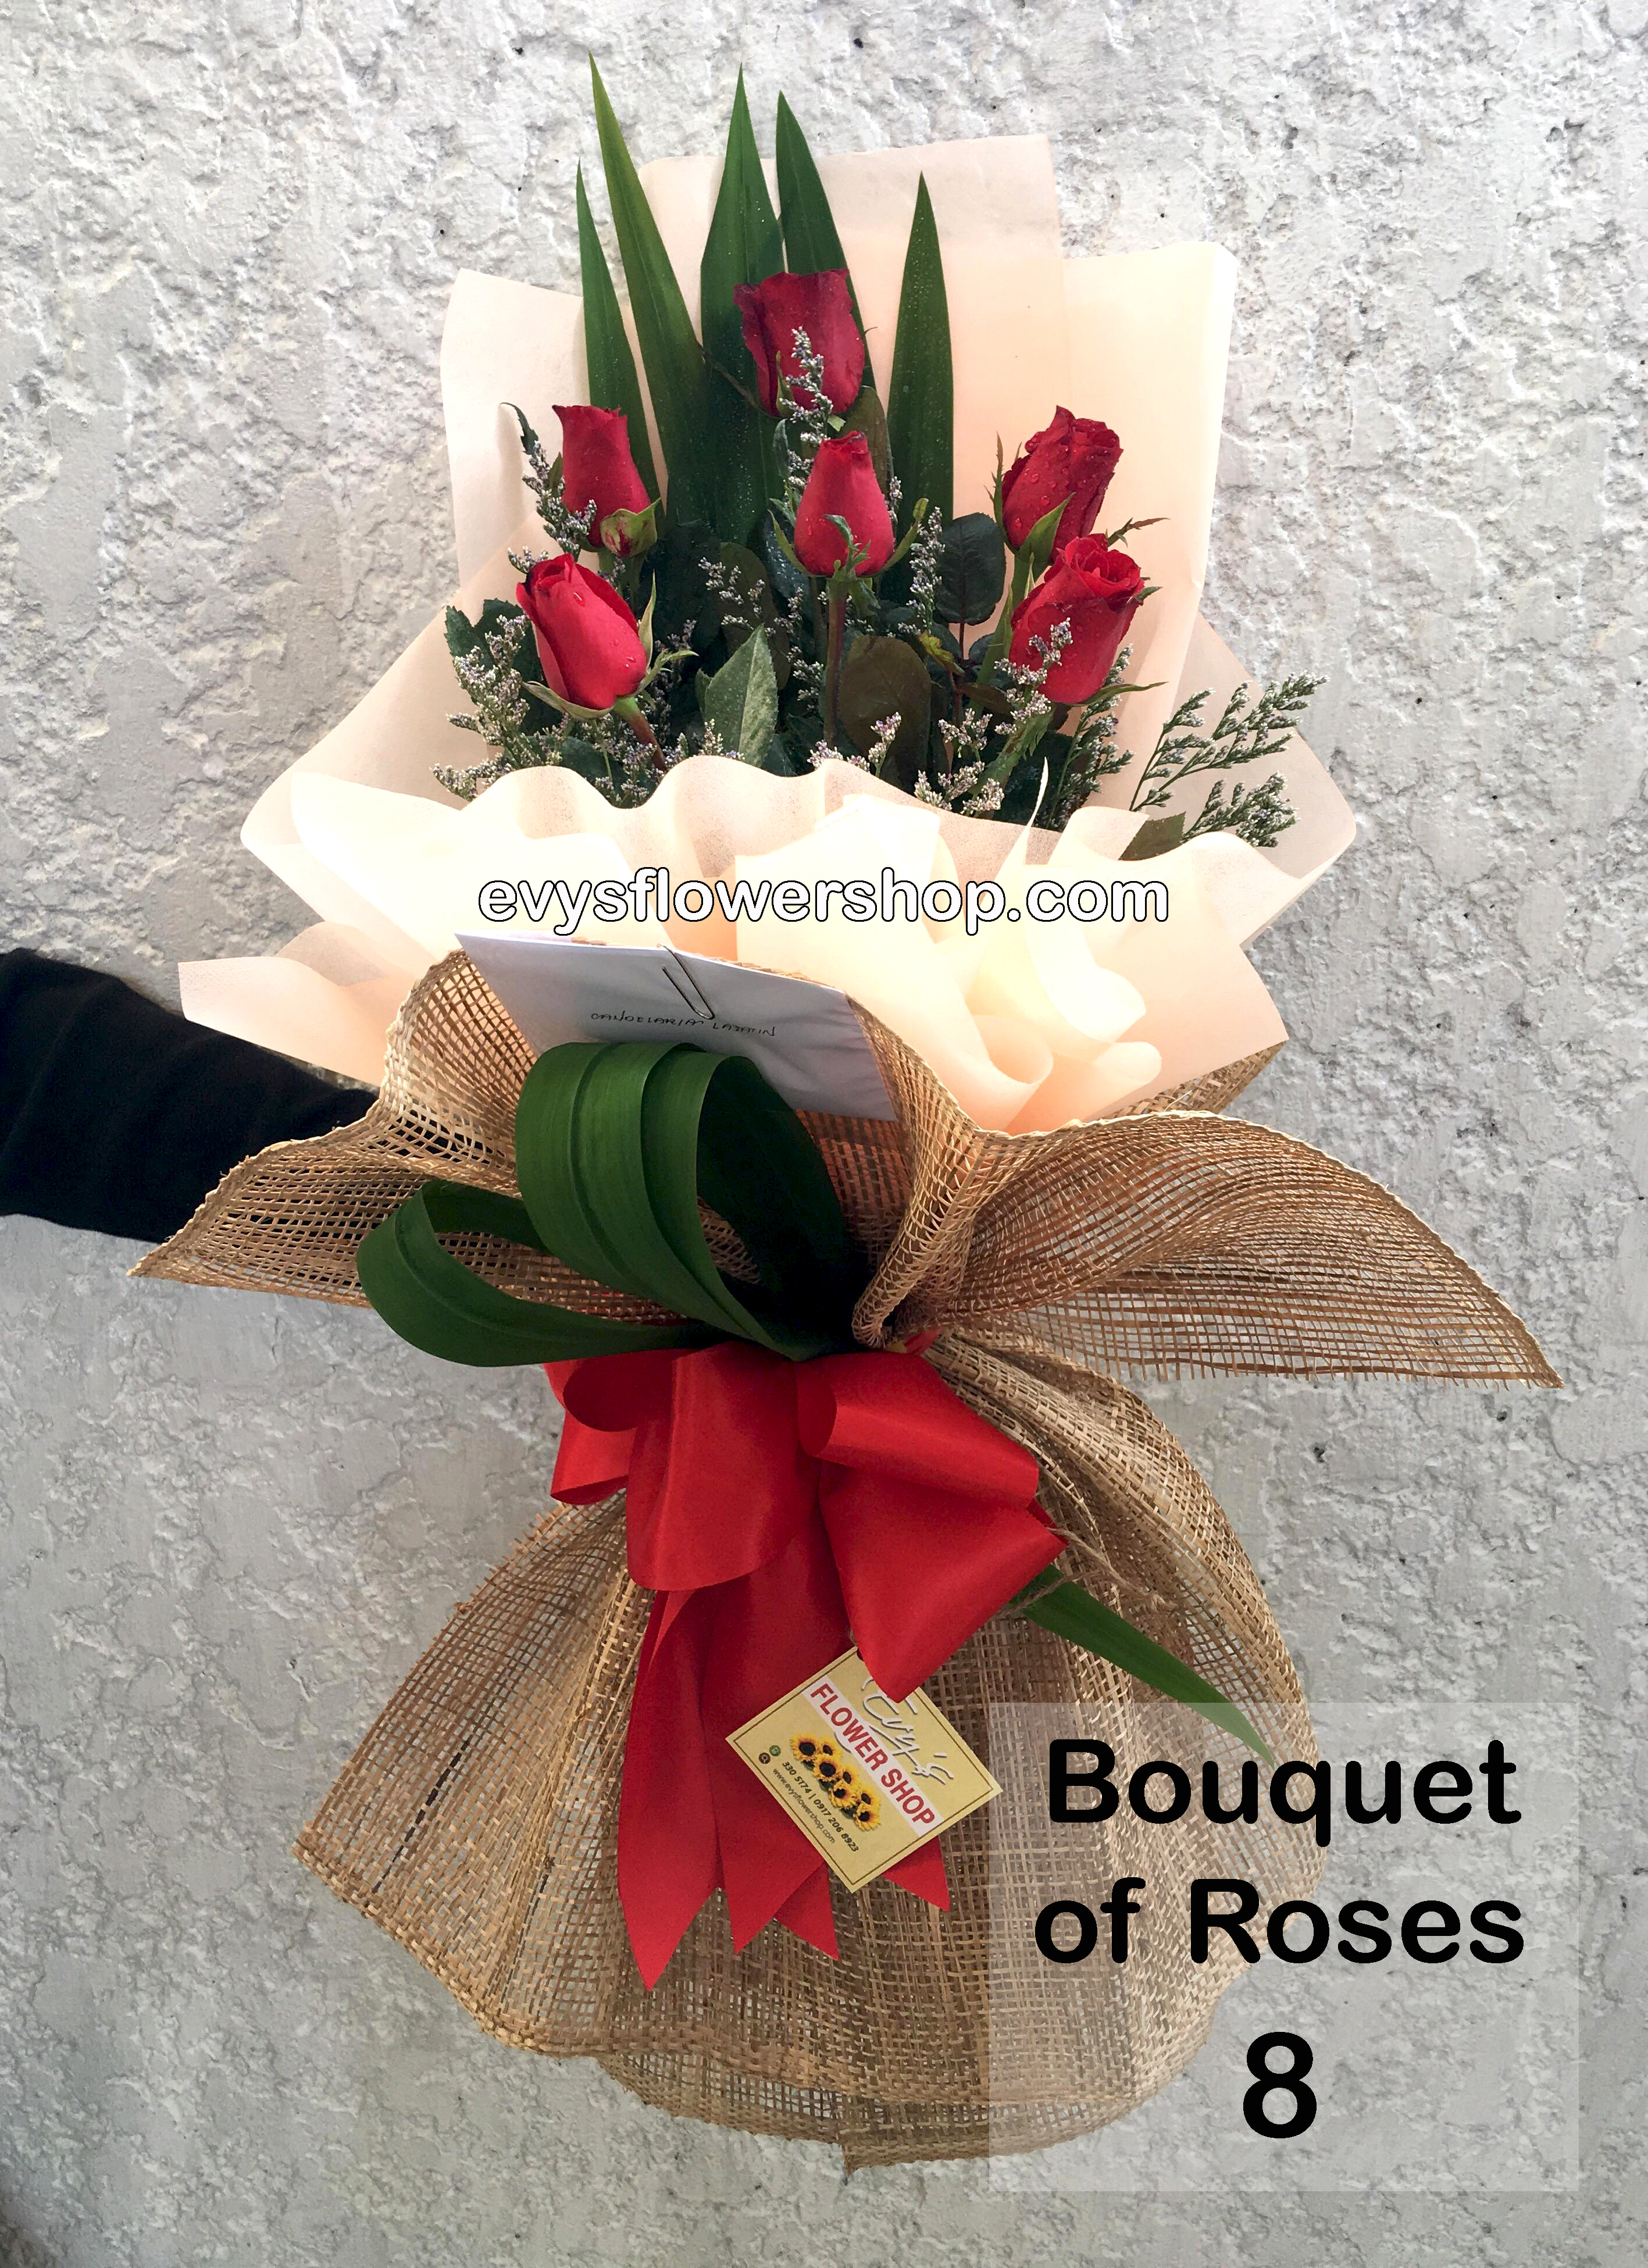 Bouquet Of Roses 8